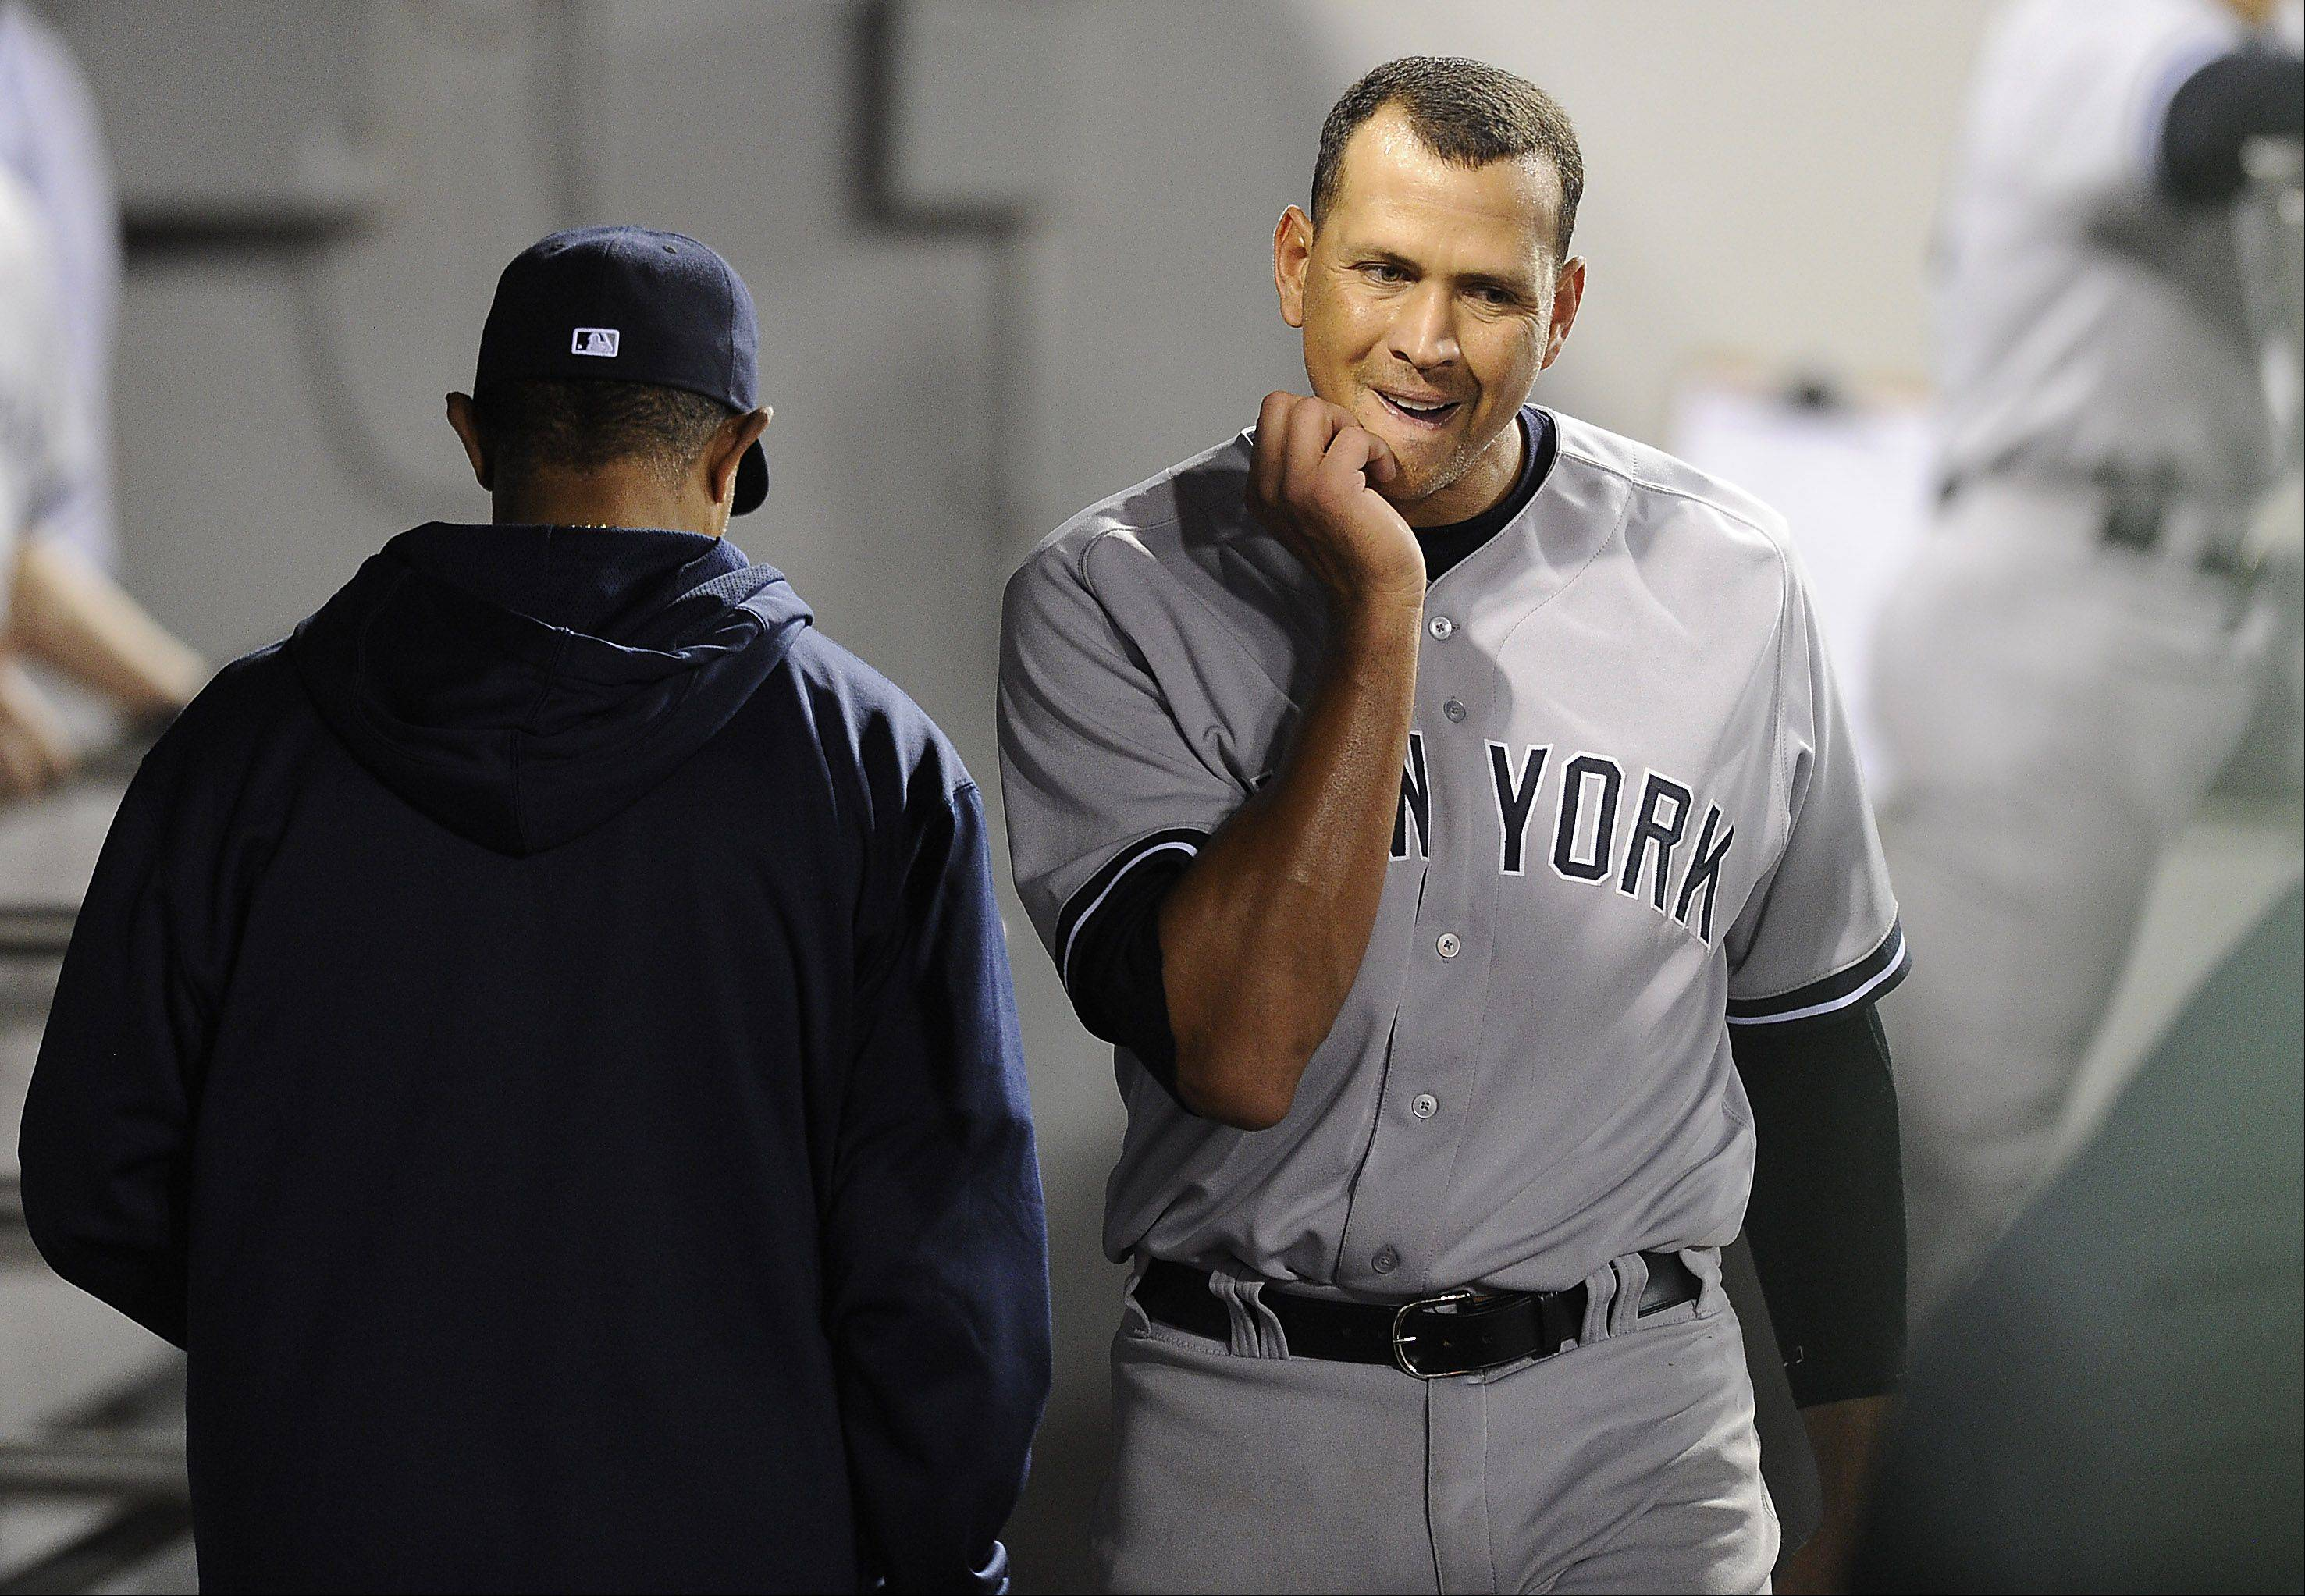 The Yankees' Alex Rodriguez walks through the dugout after striking out in the eighth inning Monday night at Cellular Field in Chicago.